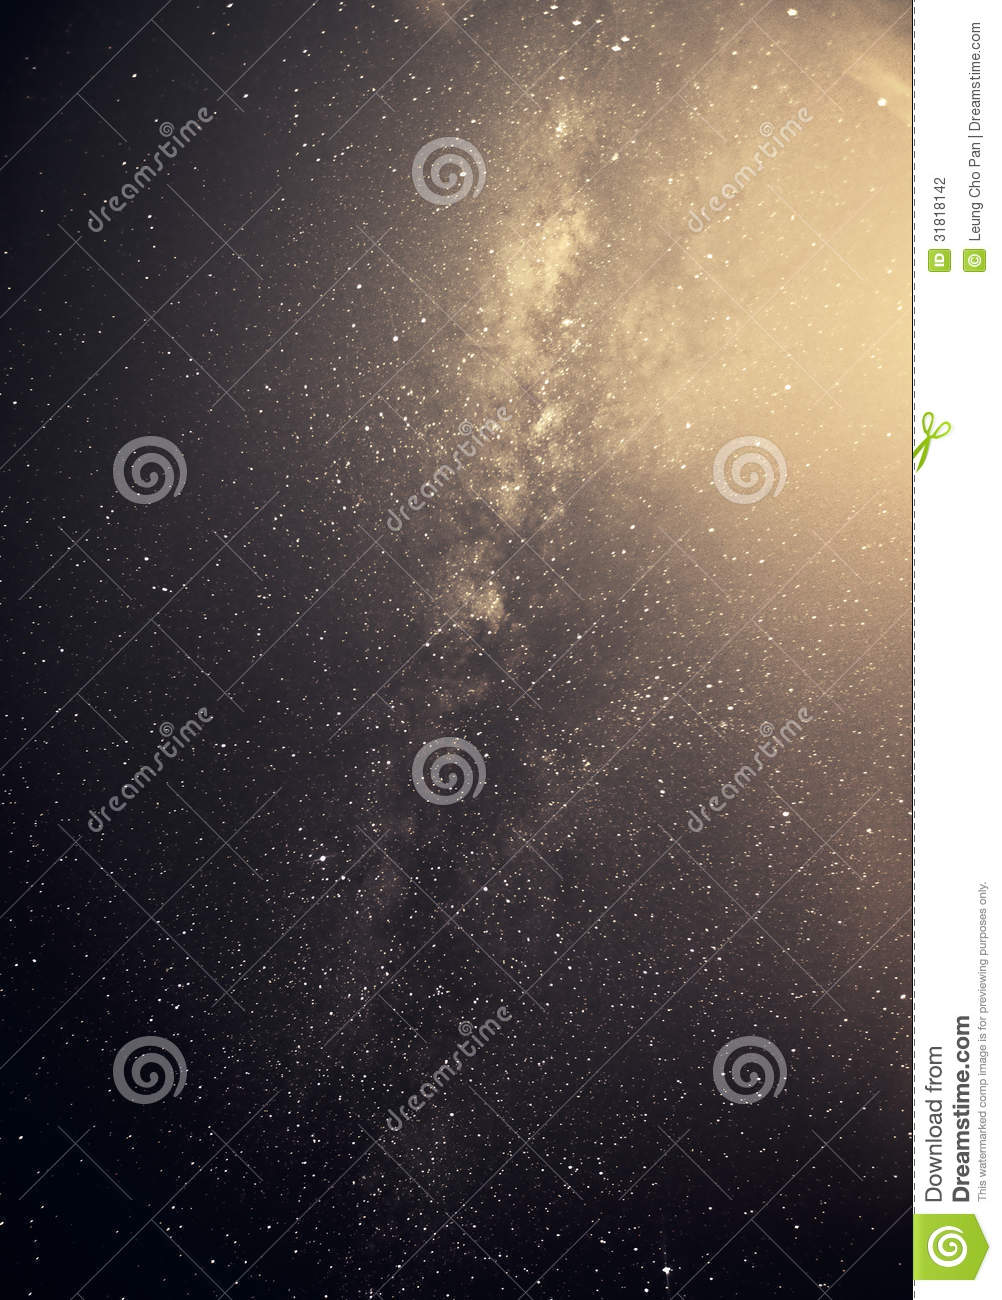 Milky Way Galaxy Stock Photography - Image: 31818142